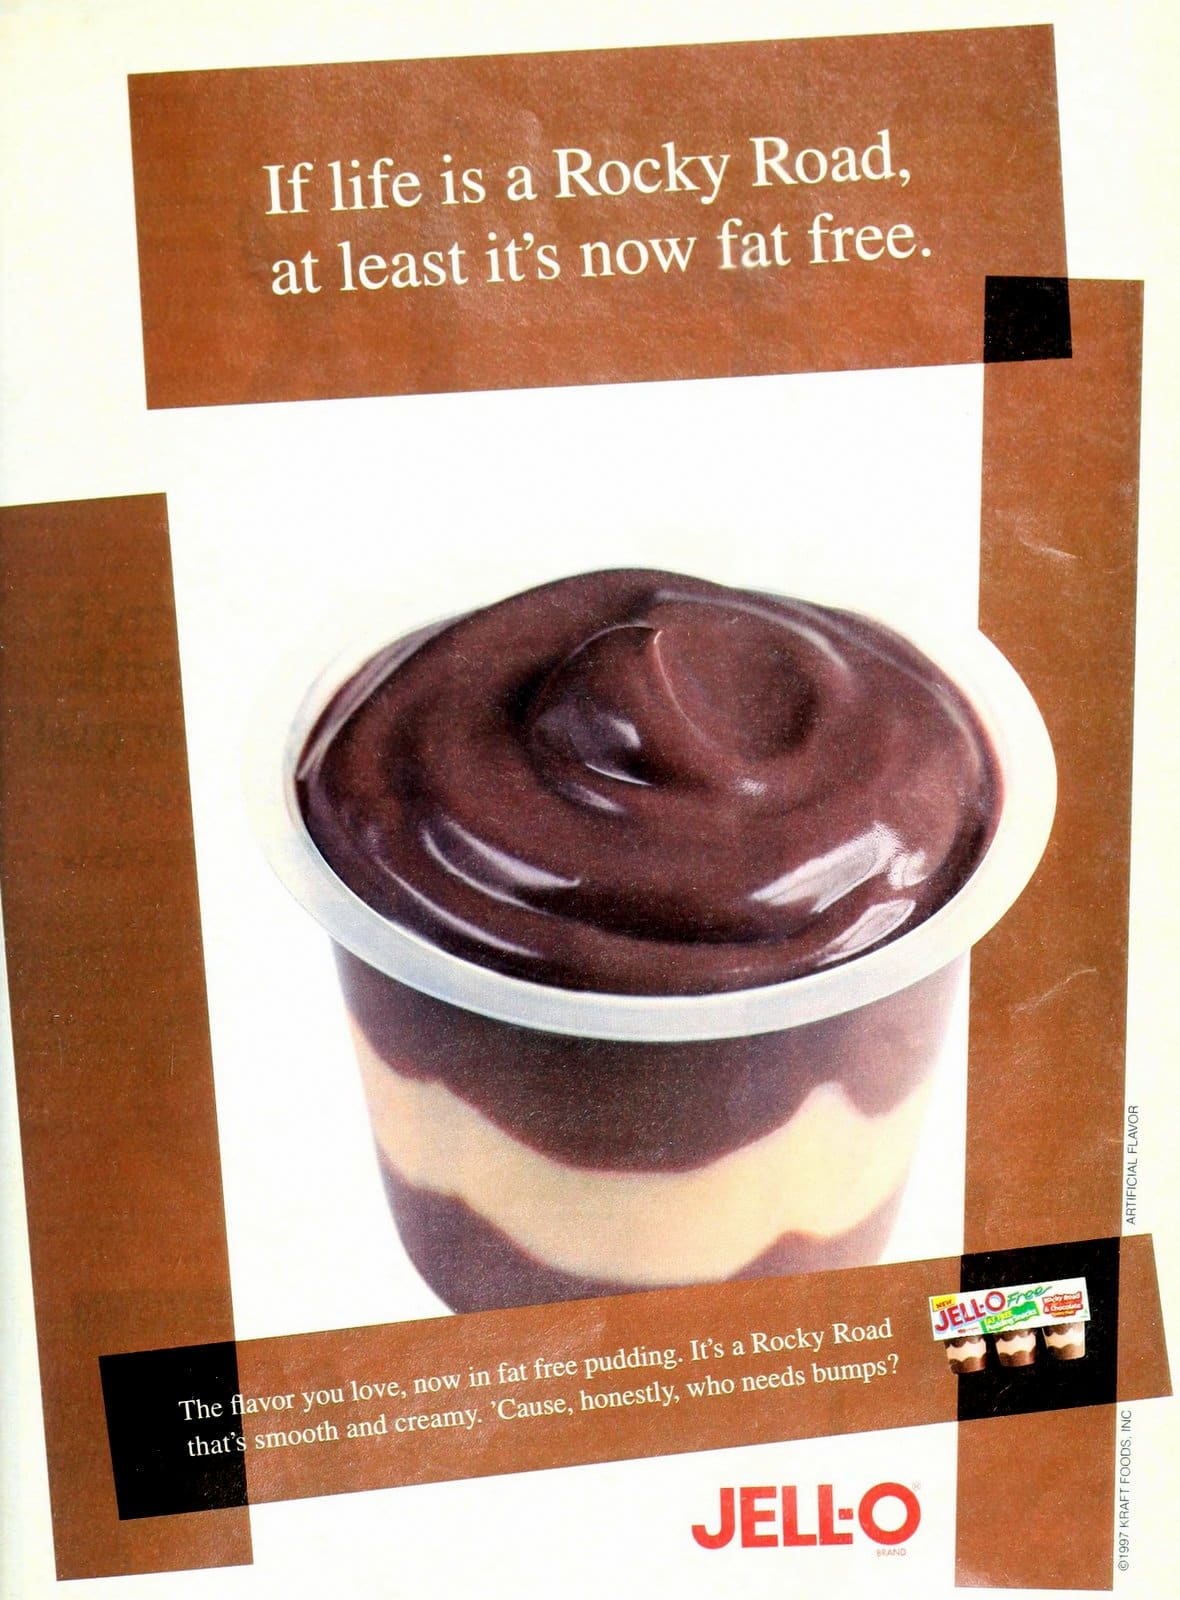 Vintage 1996 Rocky Road layered Jell-O pudding cup